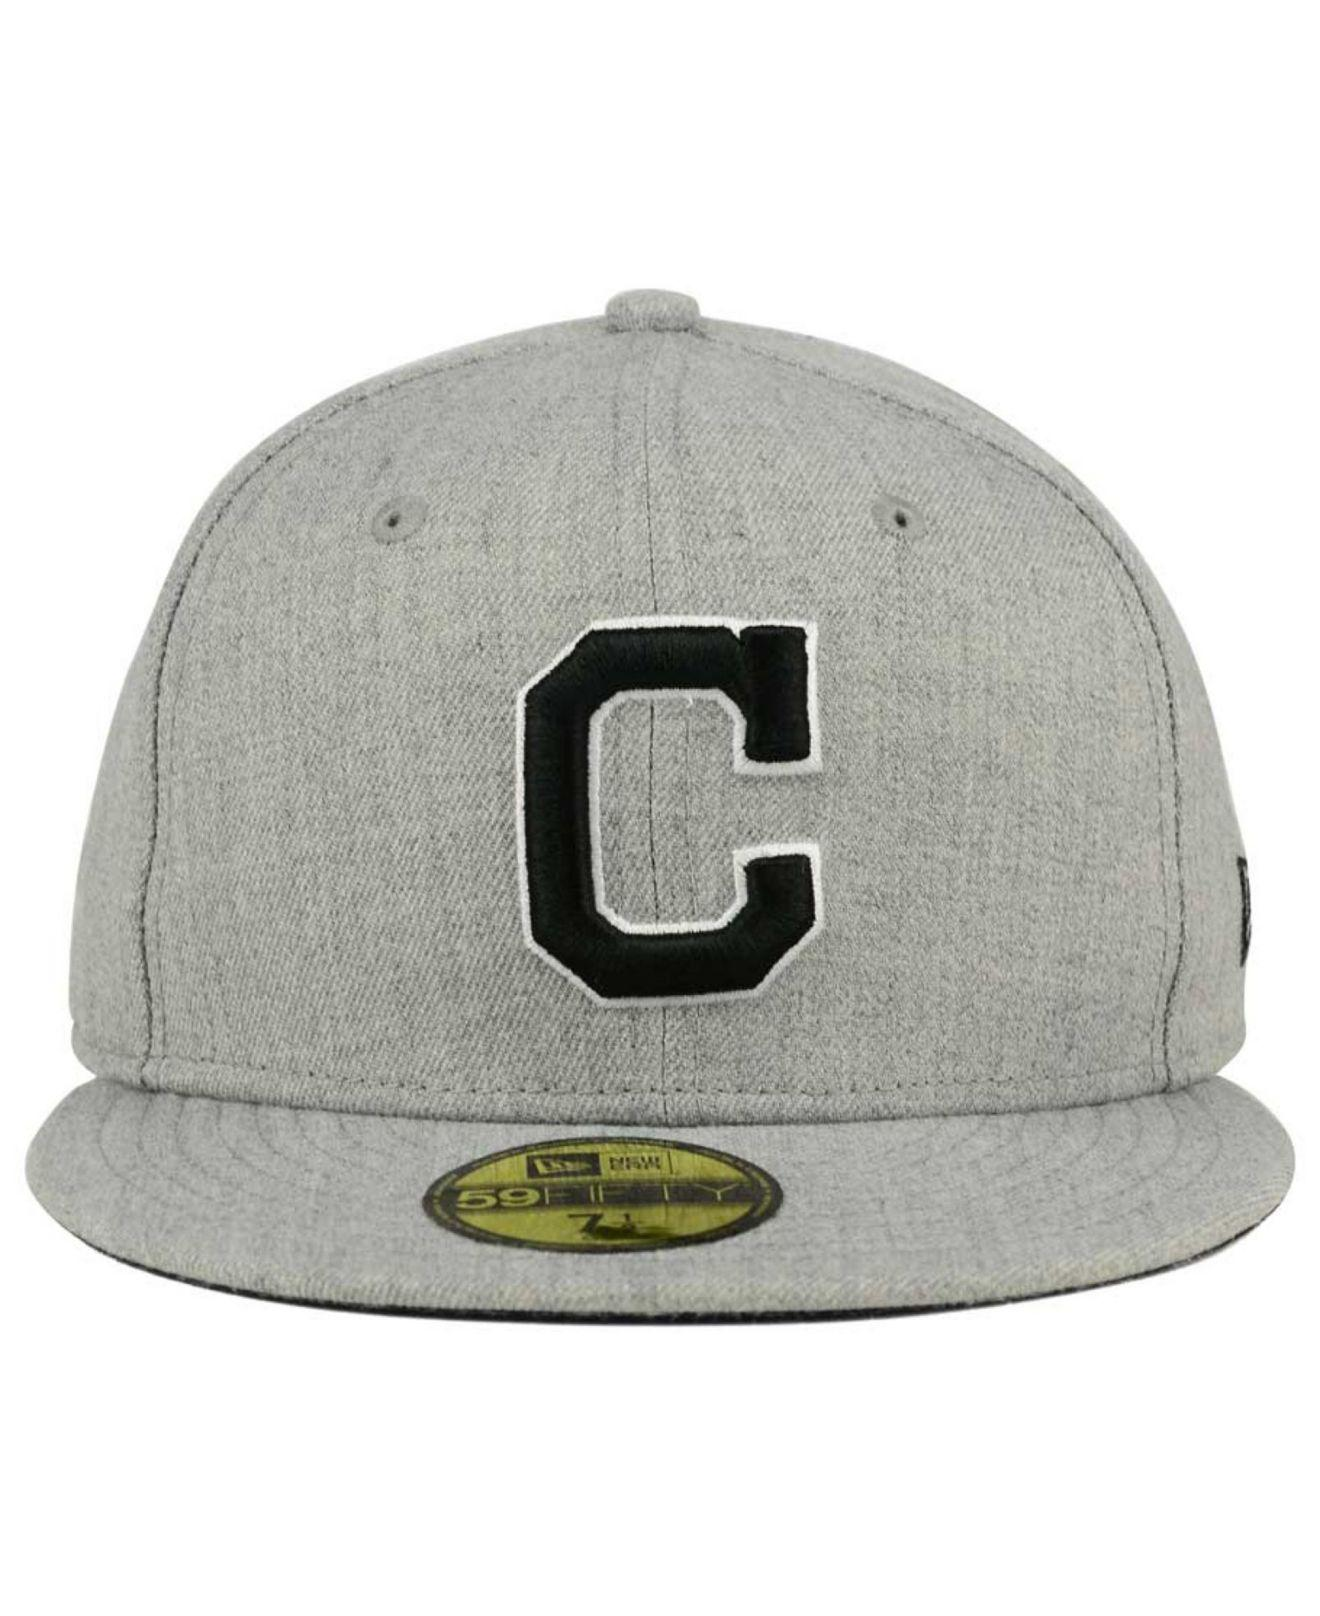 quality design bf5da 5354d ... order lyst ktz cleveland indians heather black white 59fifty cap in  gray for men 75b93 3aac4